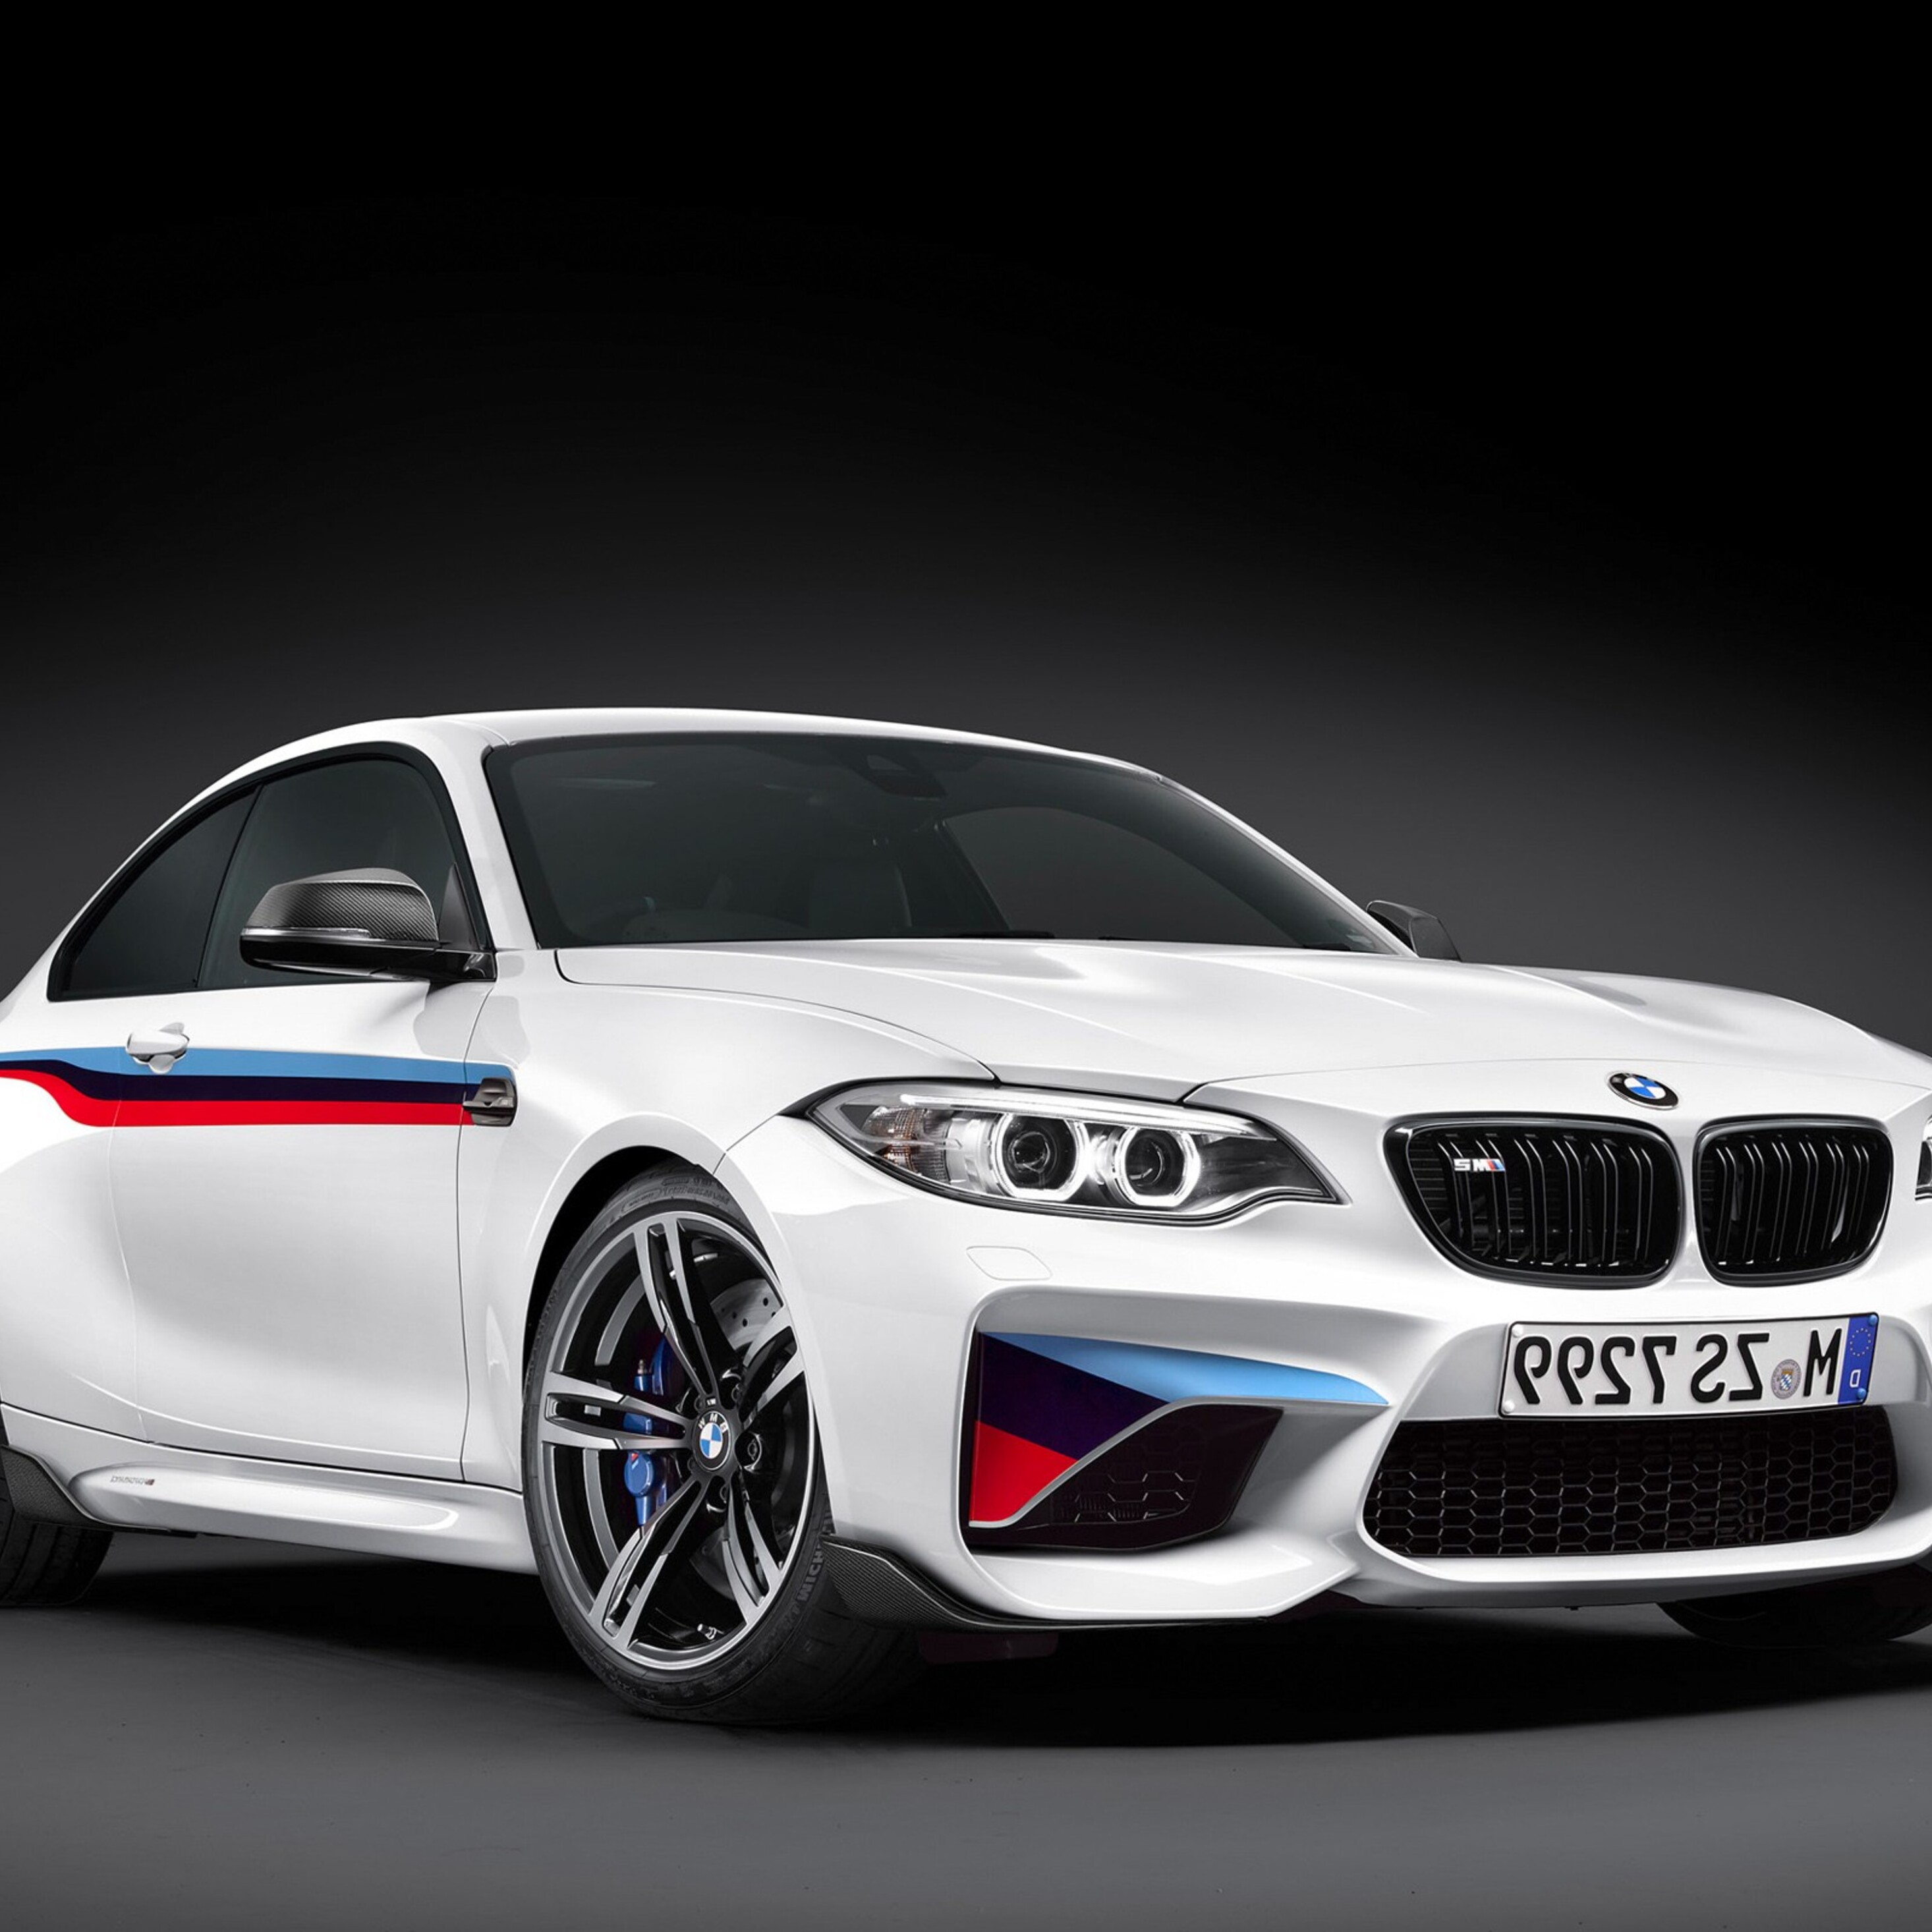 2932x2932 BMW M2 Coupe Ipad Pro Retina Display HD 4k